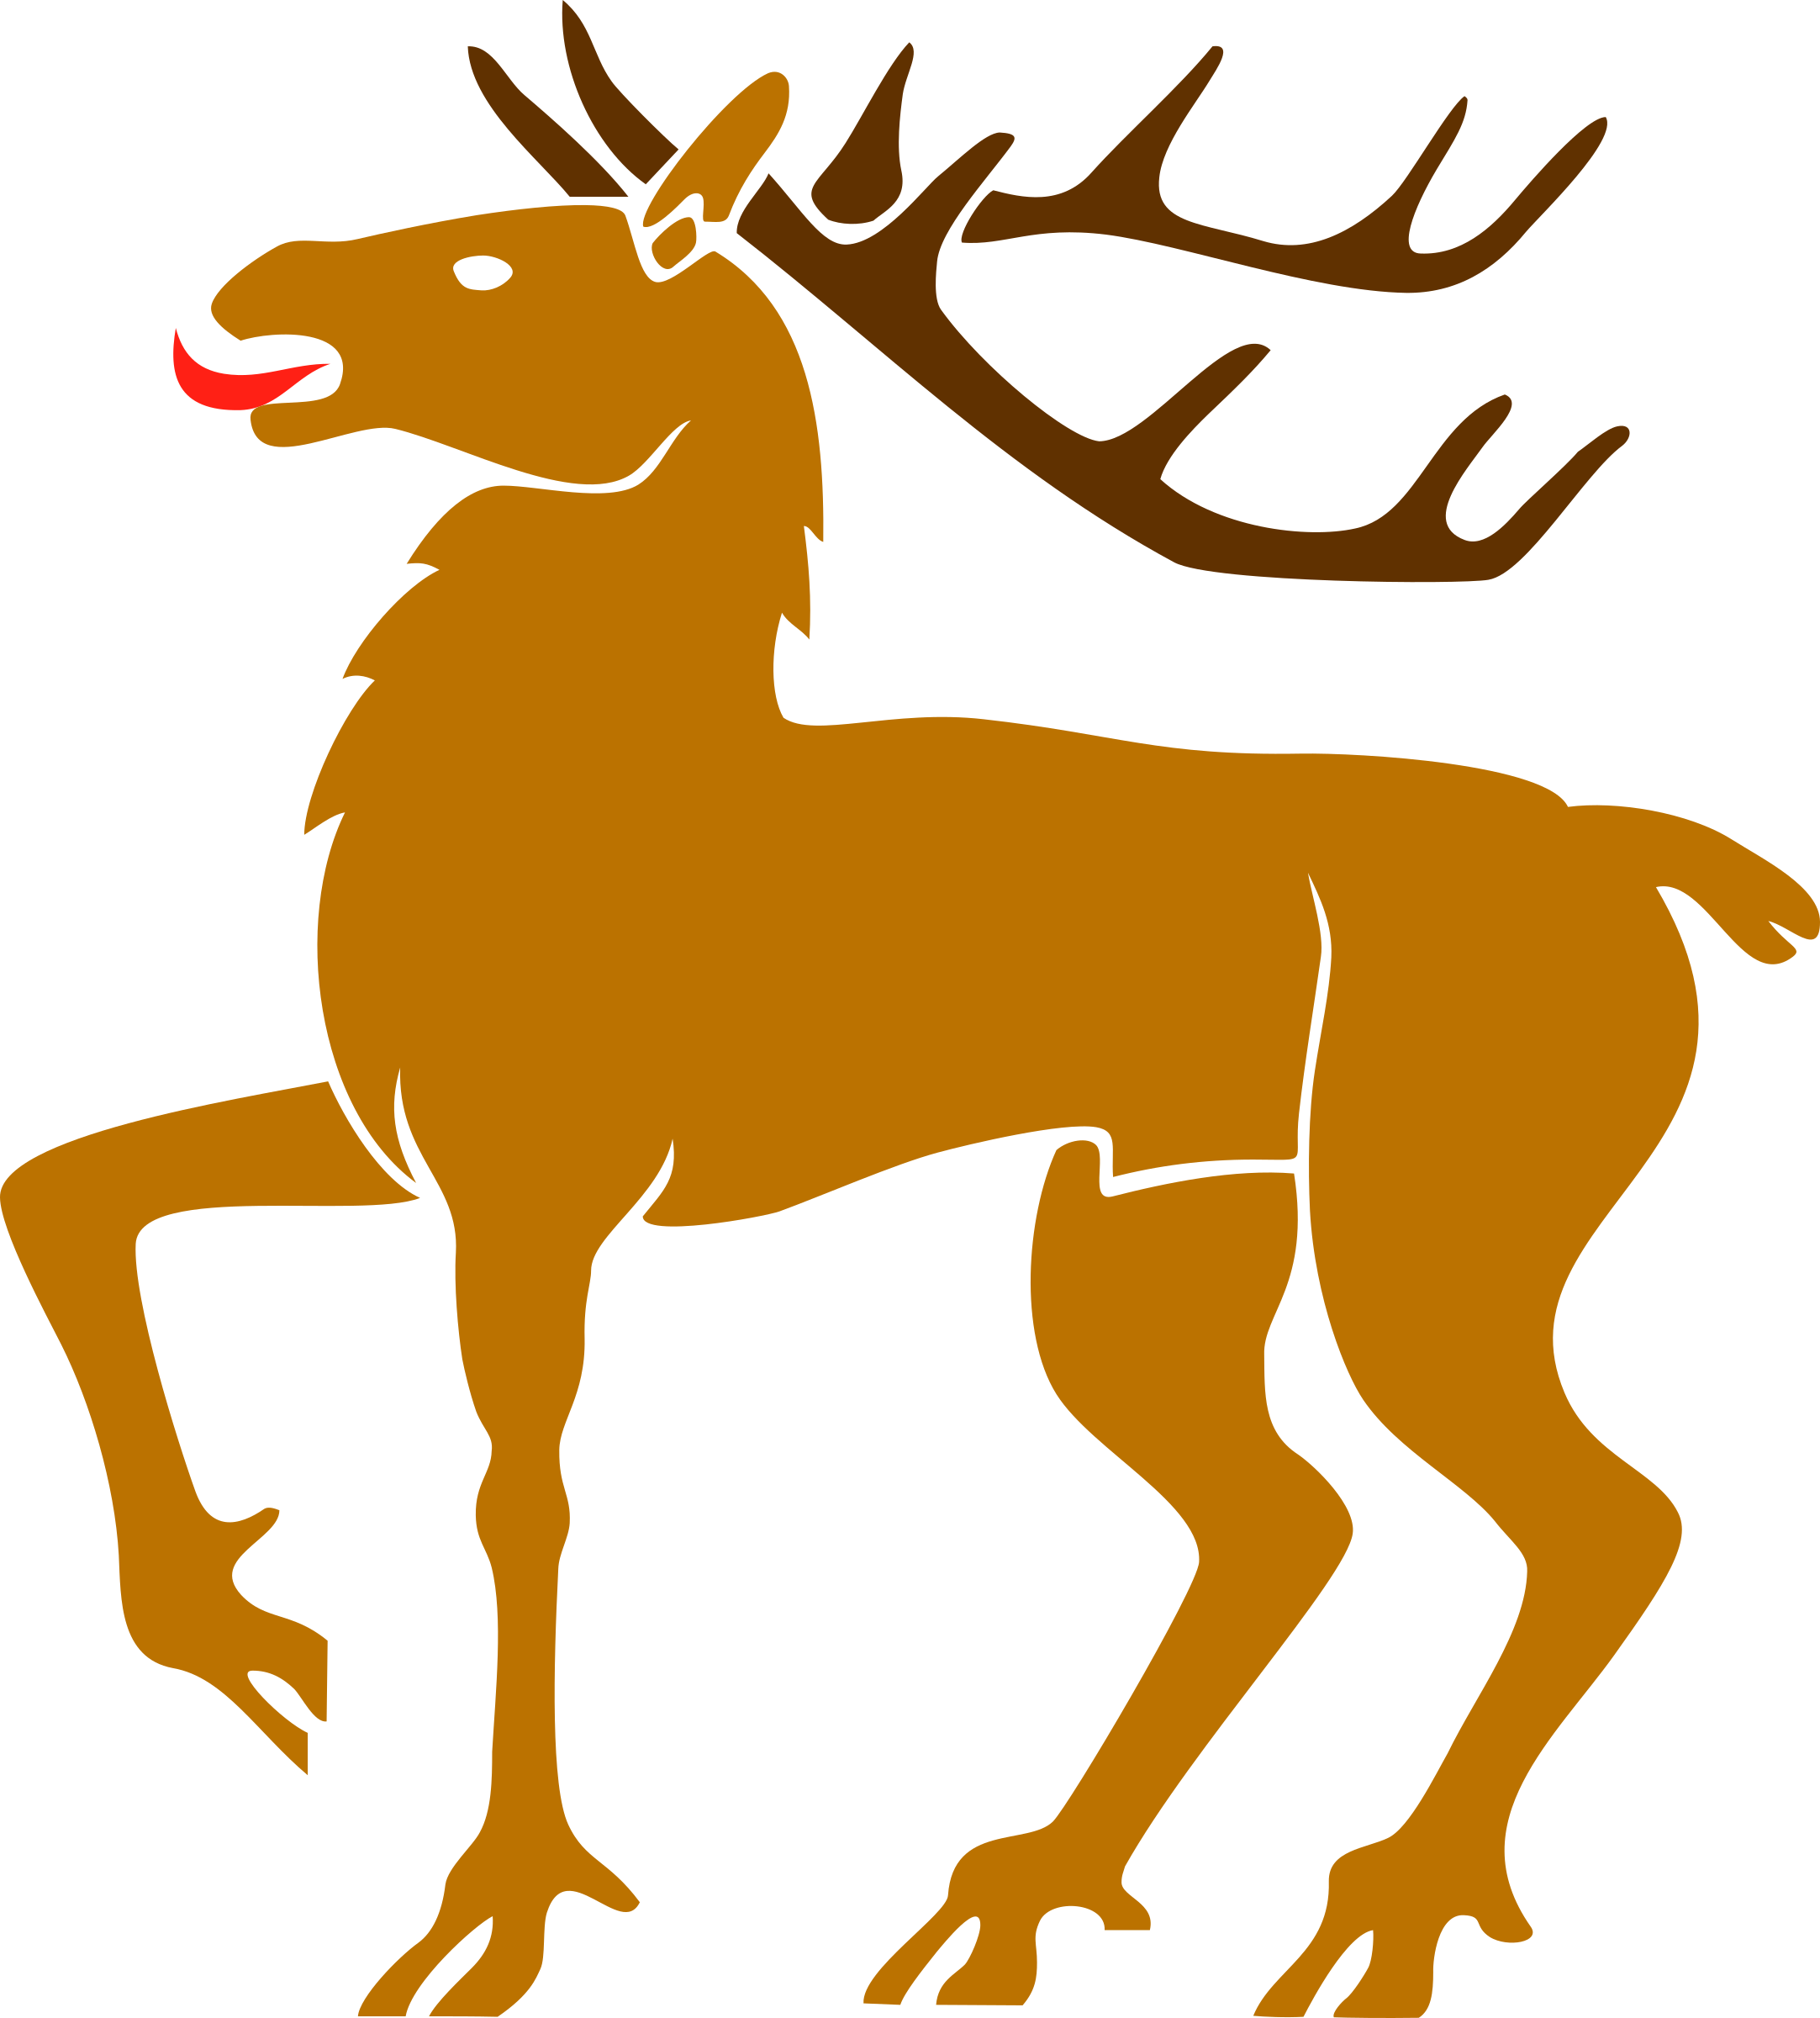 Stag clipart 3 Stag Stag Clipart 3